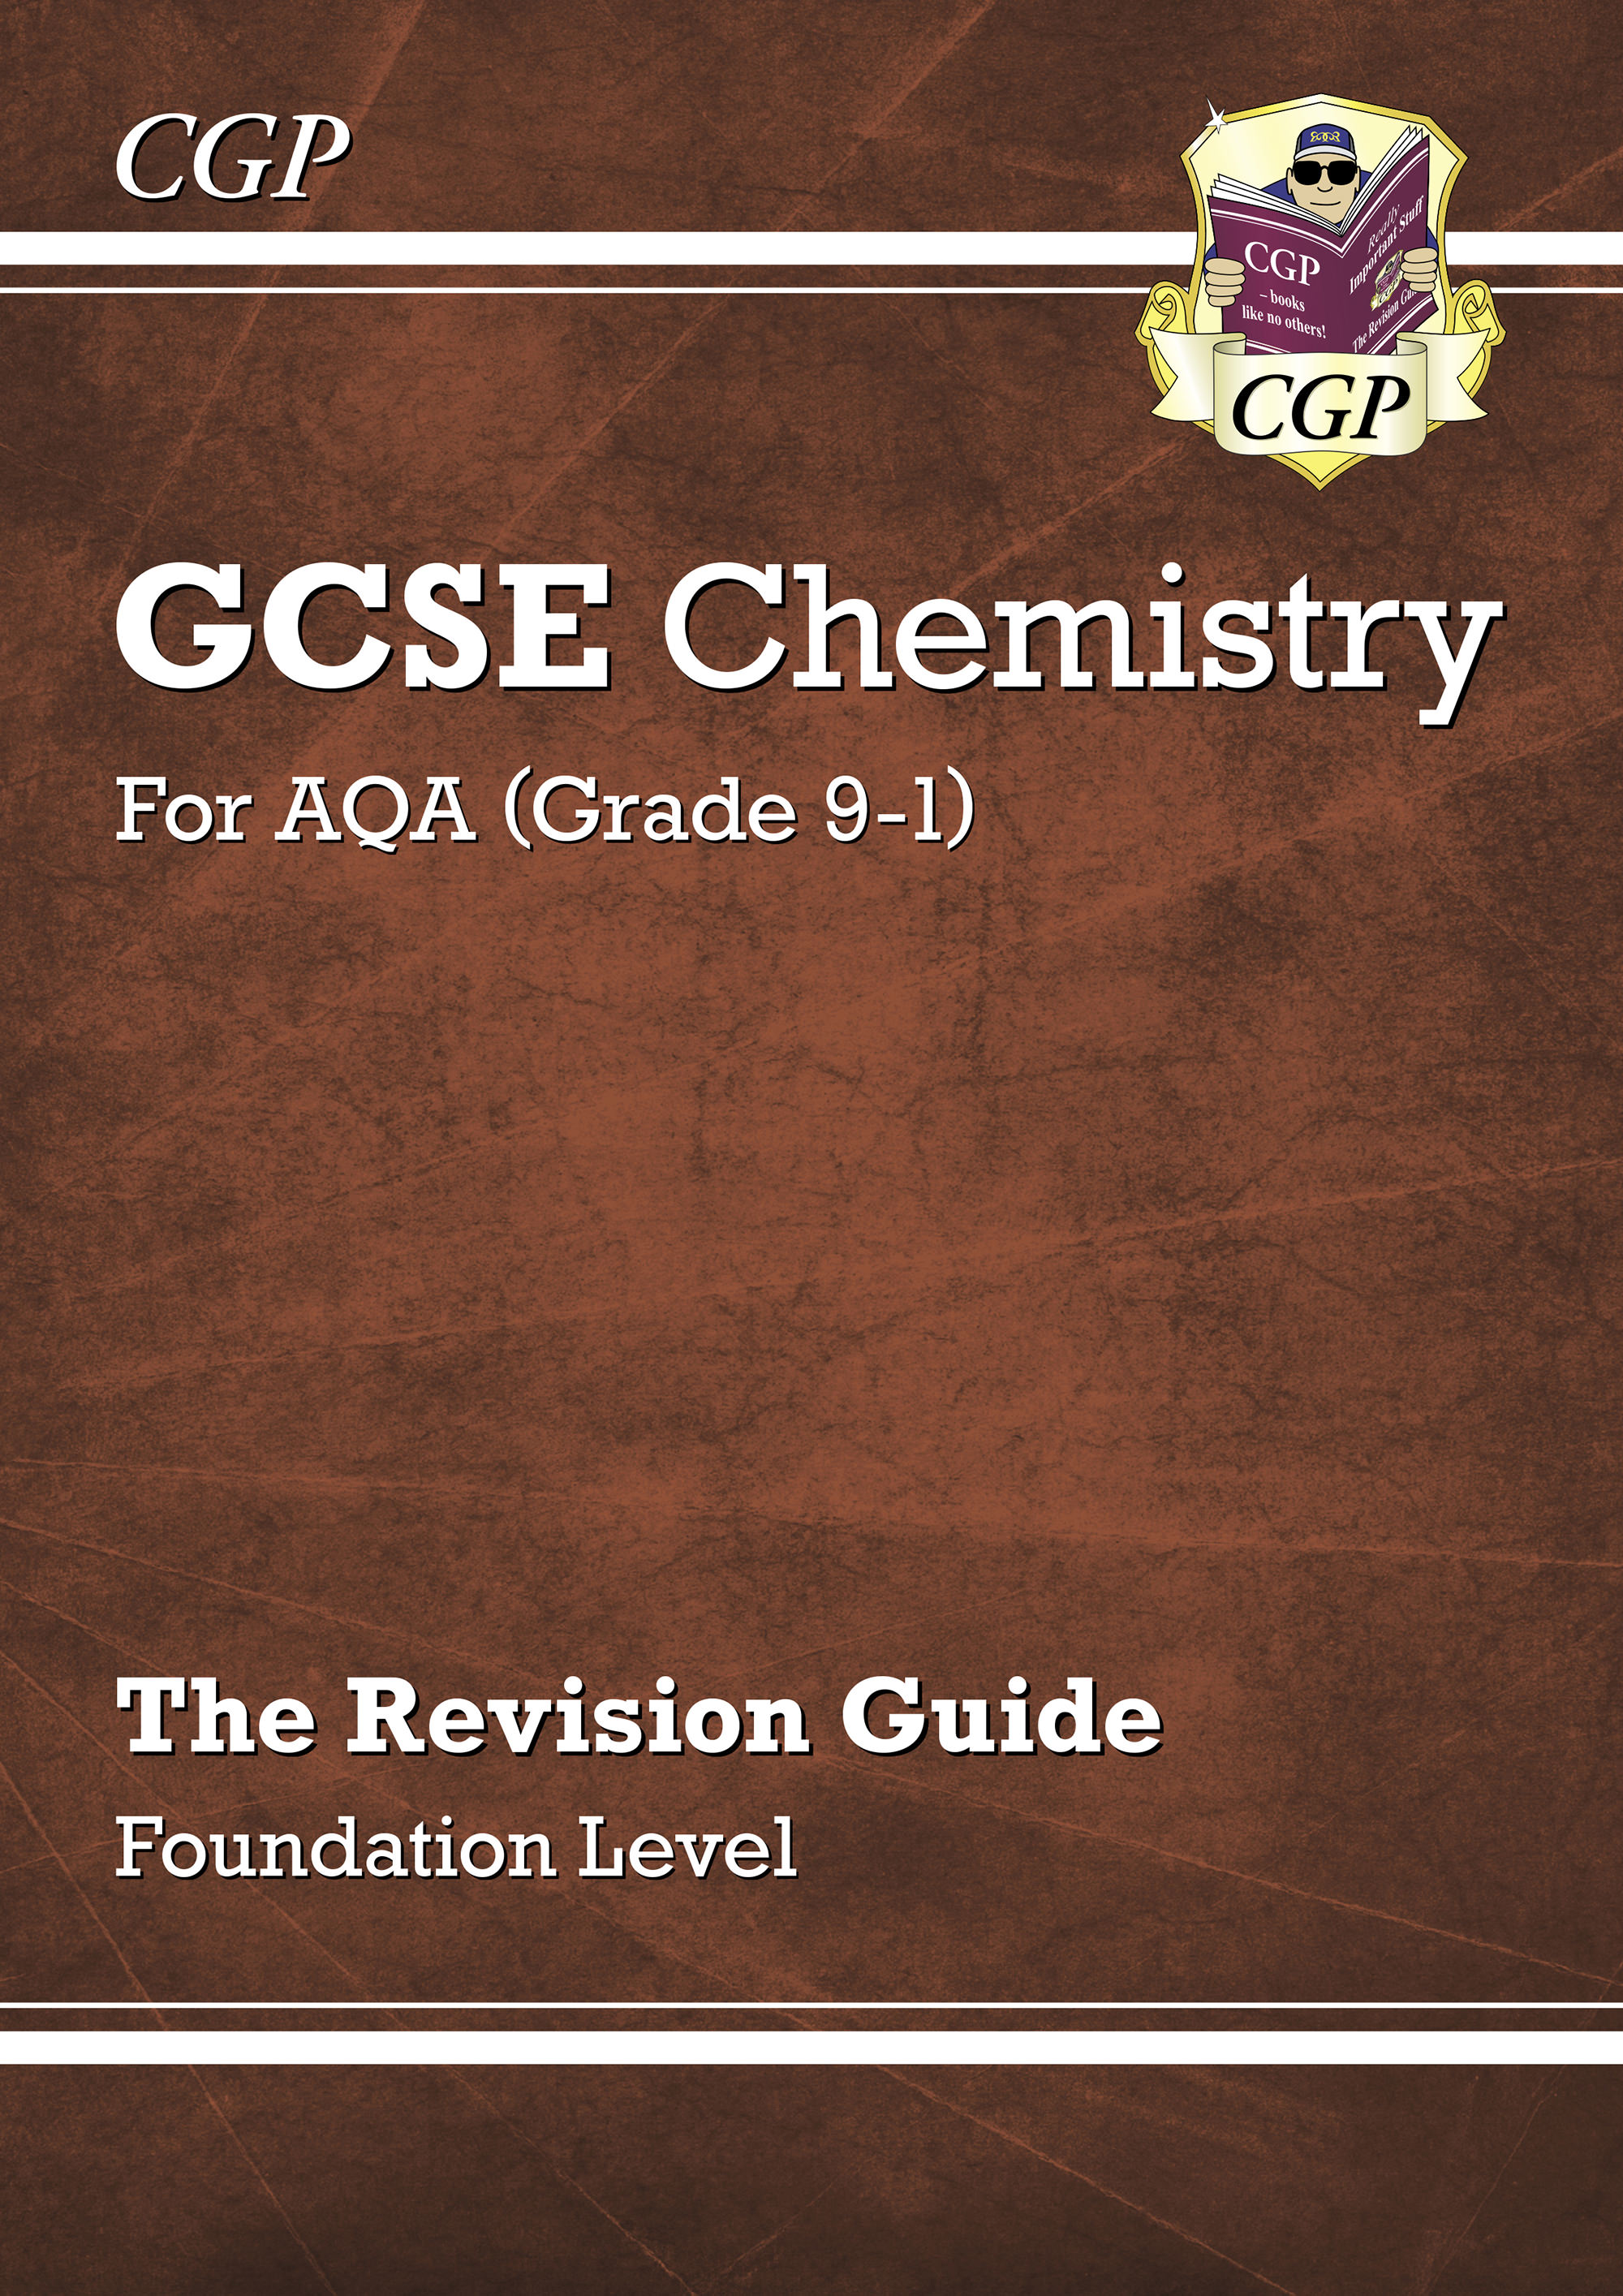 CAFR41DK - New Grade 9-1 GCSE Chemistry: AQA Revision Guide- Foundation